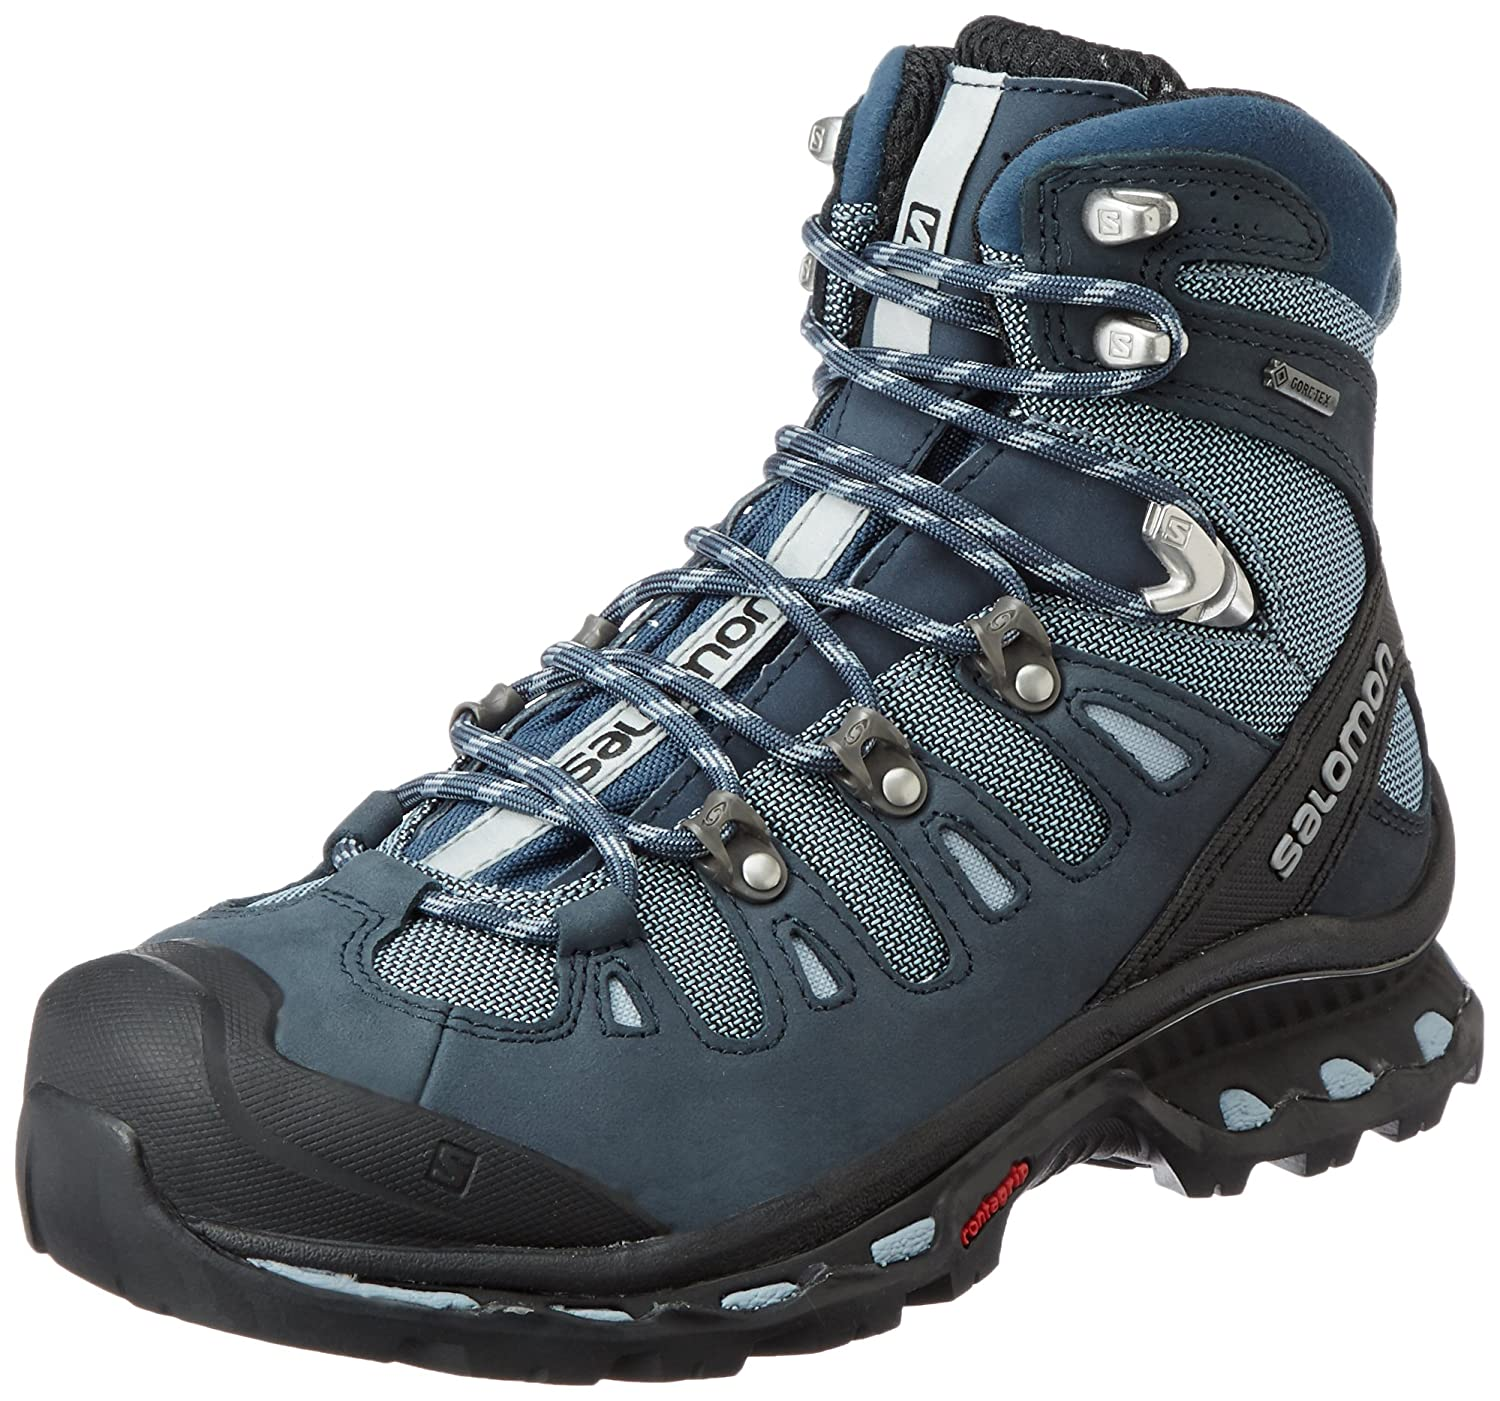 Salomon Women's Quest 4D 2 GTX Hiking Boot B00PRNQGKS 9.5 B(M) US|Deep Blue/Stone Blue/Light Onix